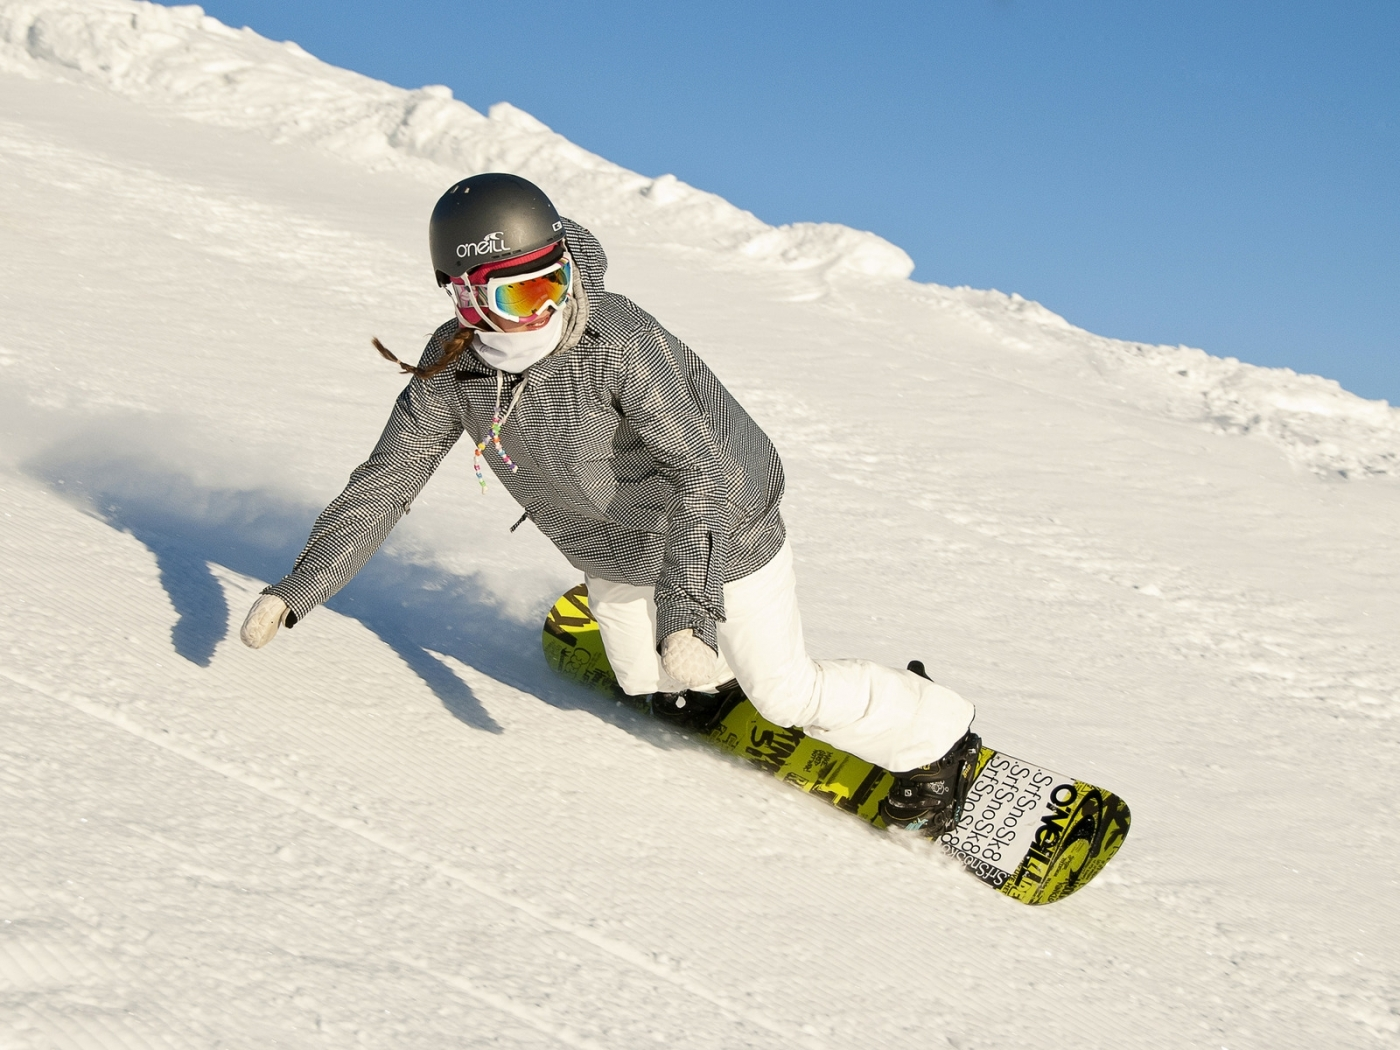 39894 download wallpaper Sports, People, Snowboarding screensavers and pictures for free